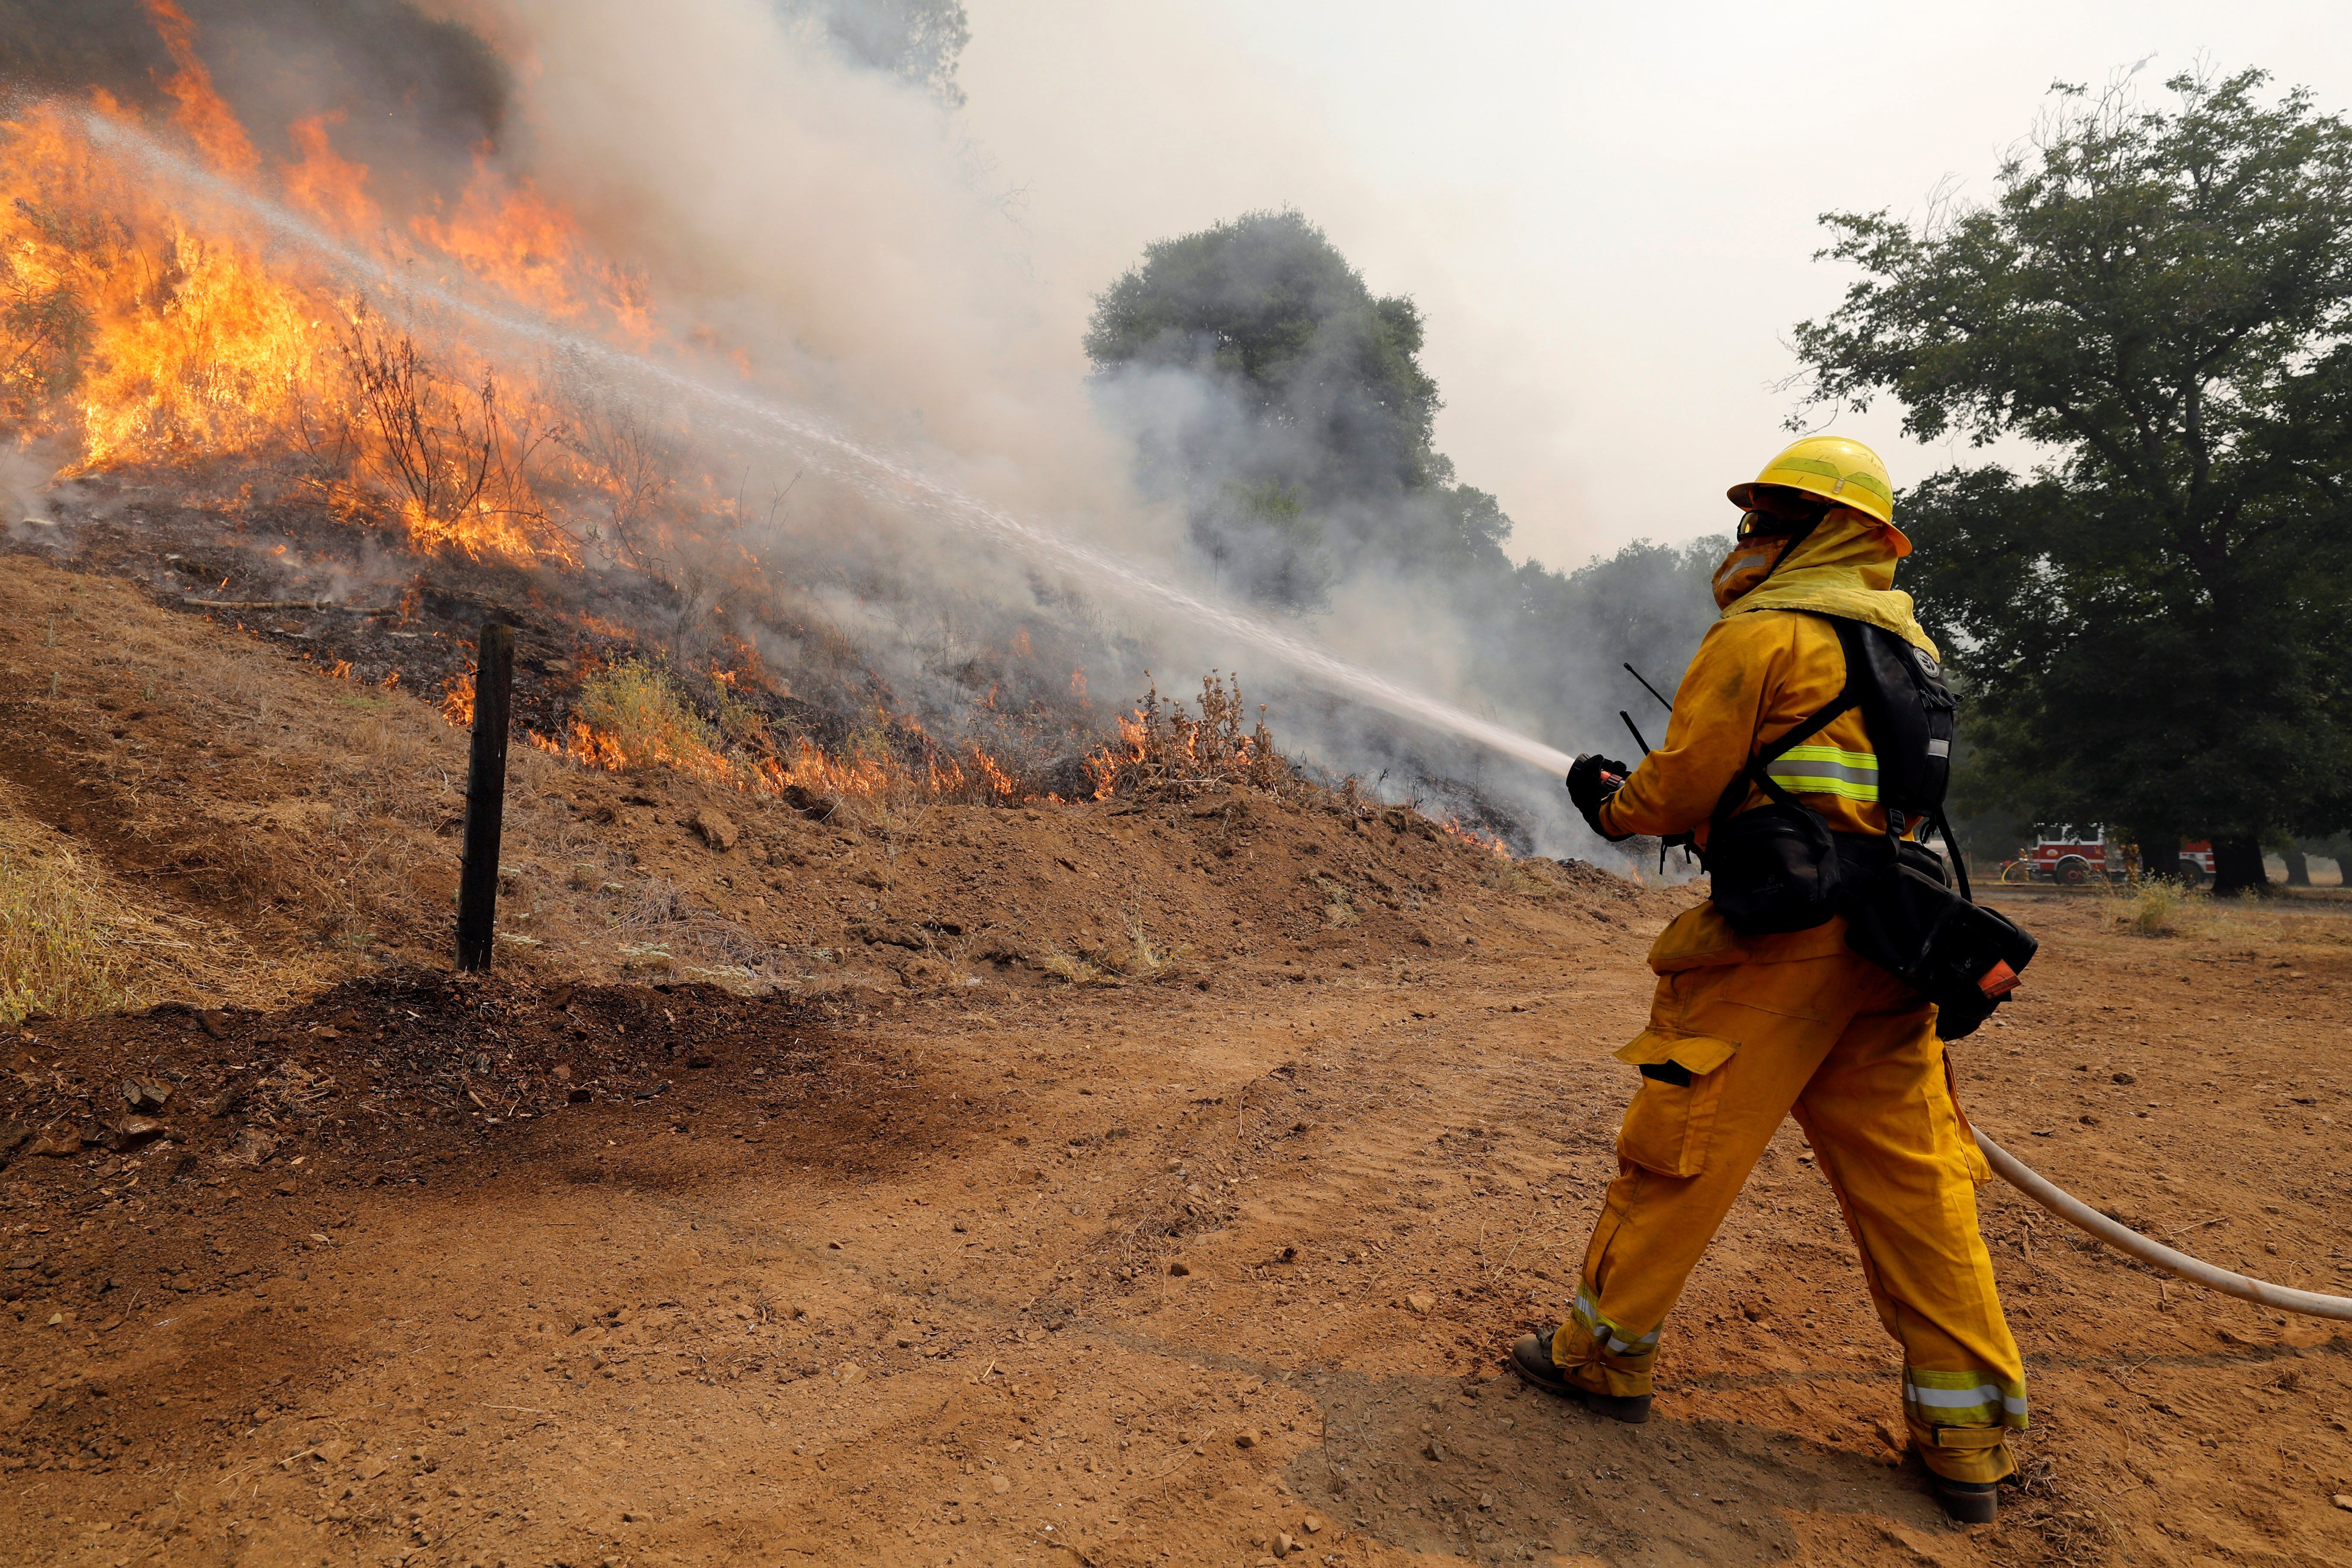 A firefighter uses a hose to knock down flames while battling the Ranch Fire (Mendocino Complex) north of Upper Lake, California, U.S., August 1, 2018. REUTERS/Fred Greaves